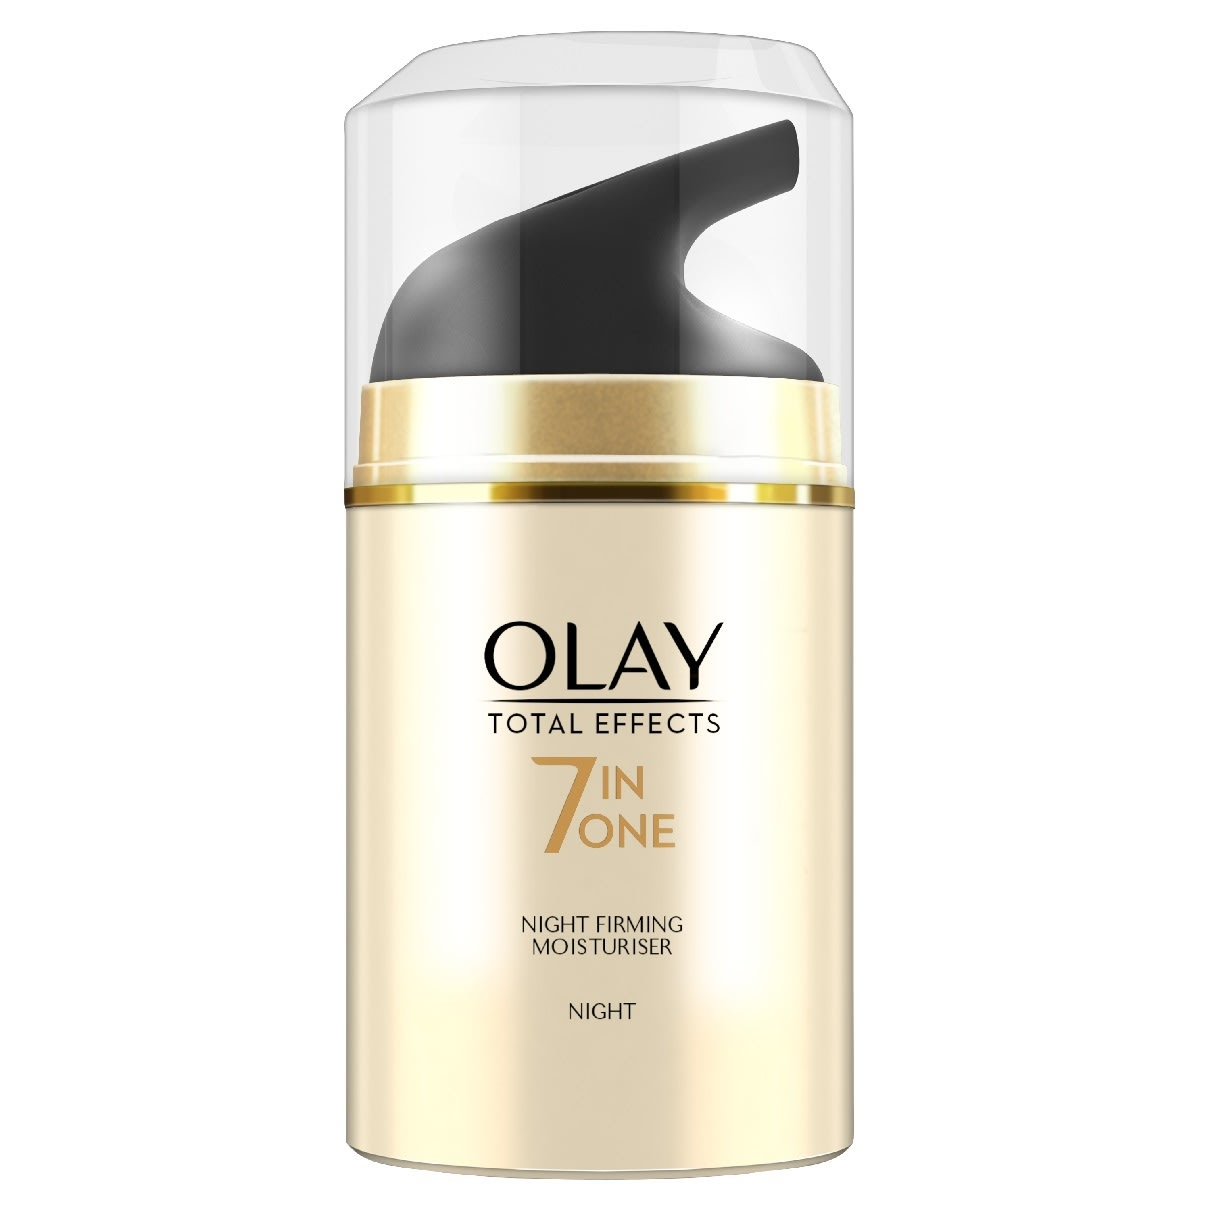 Olay Total Effects Night Firming Moisturiser